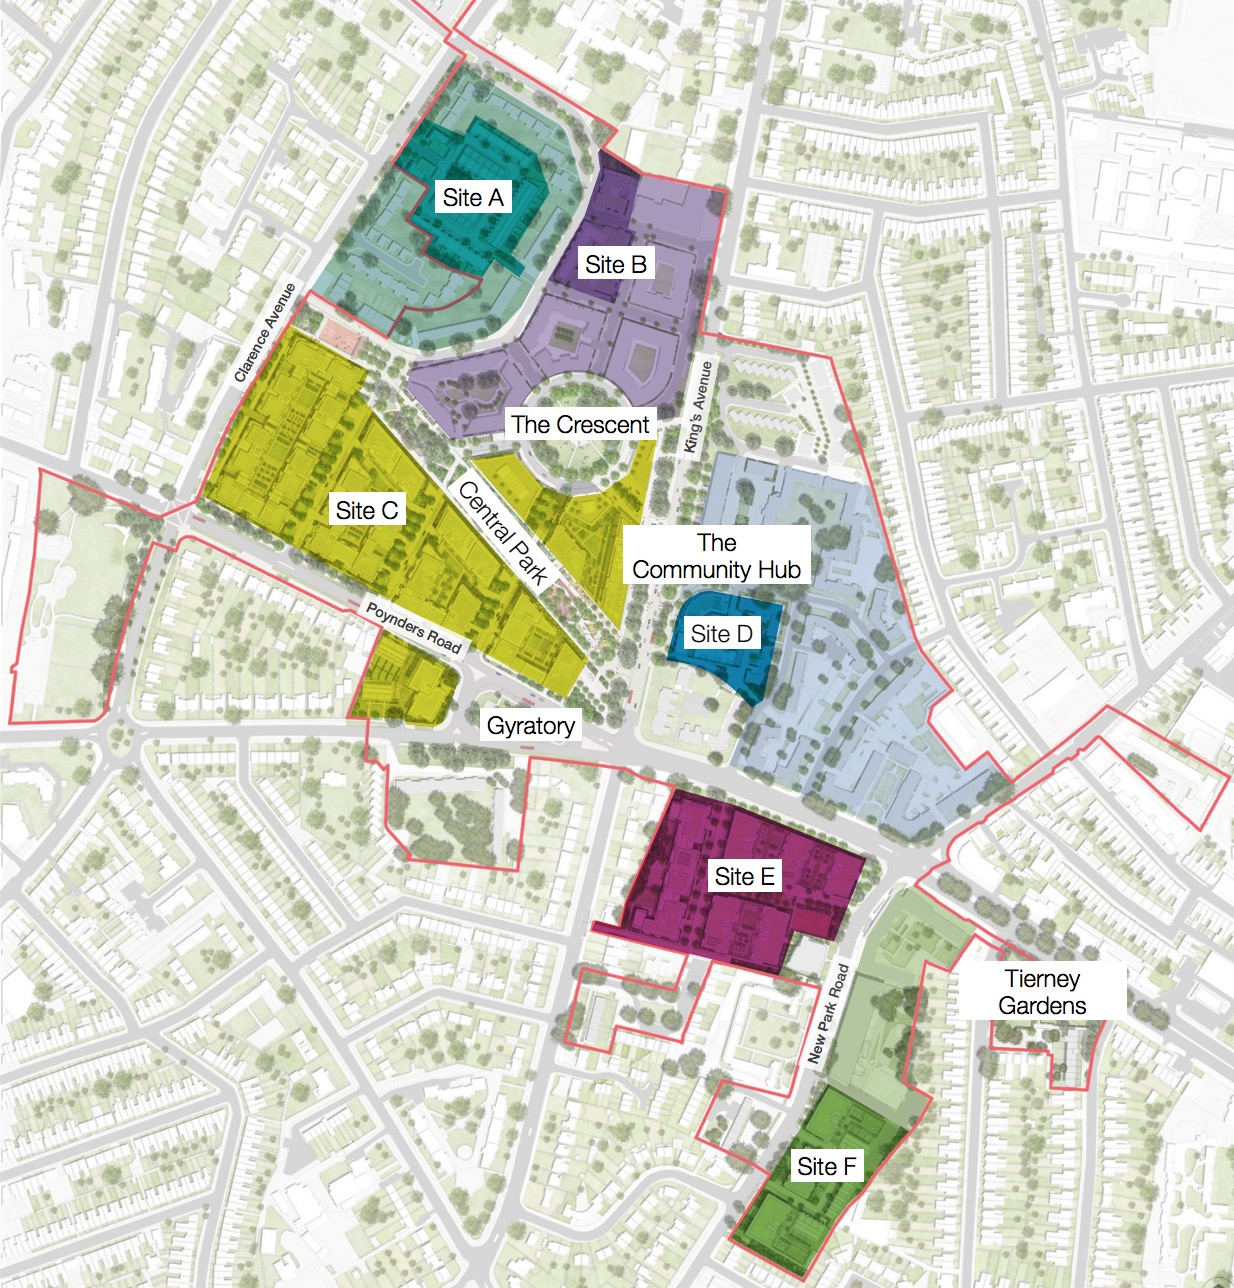 Map showing layout of Clapham Park site